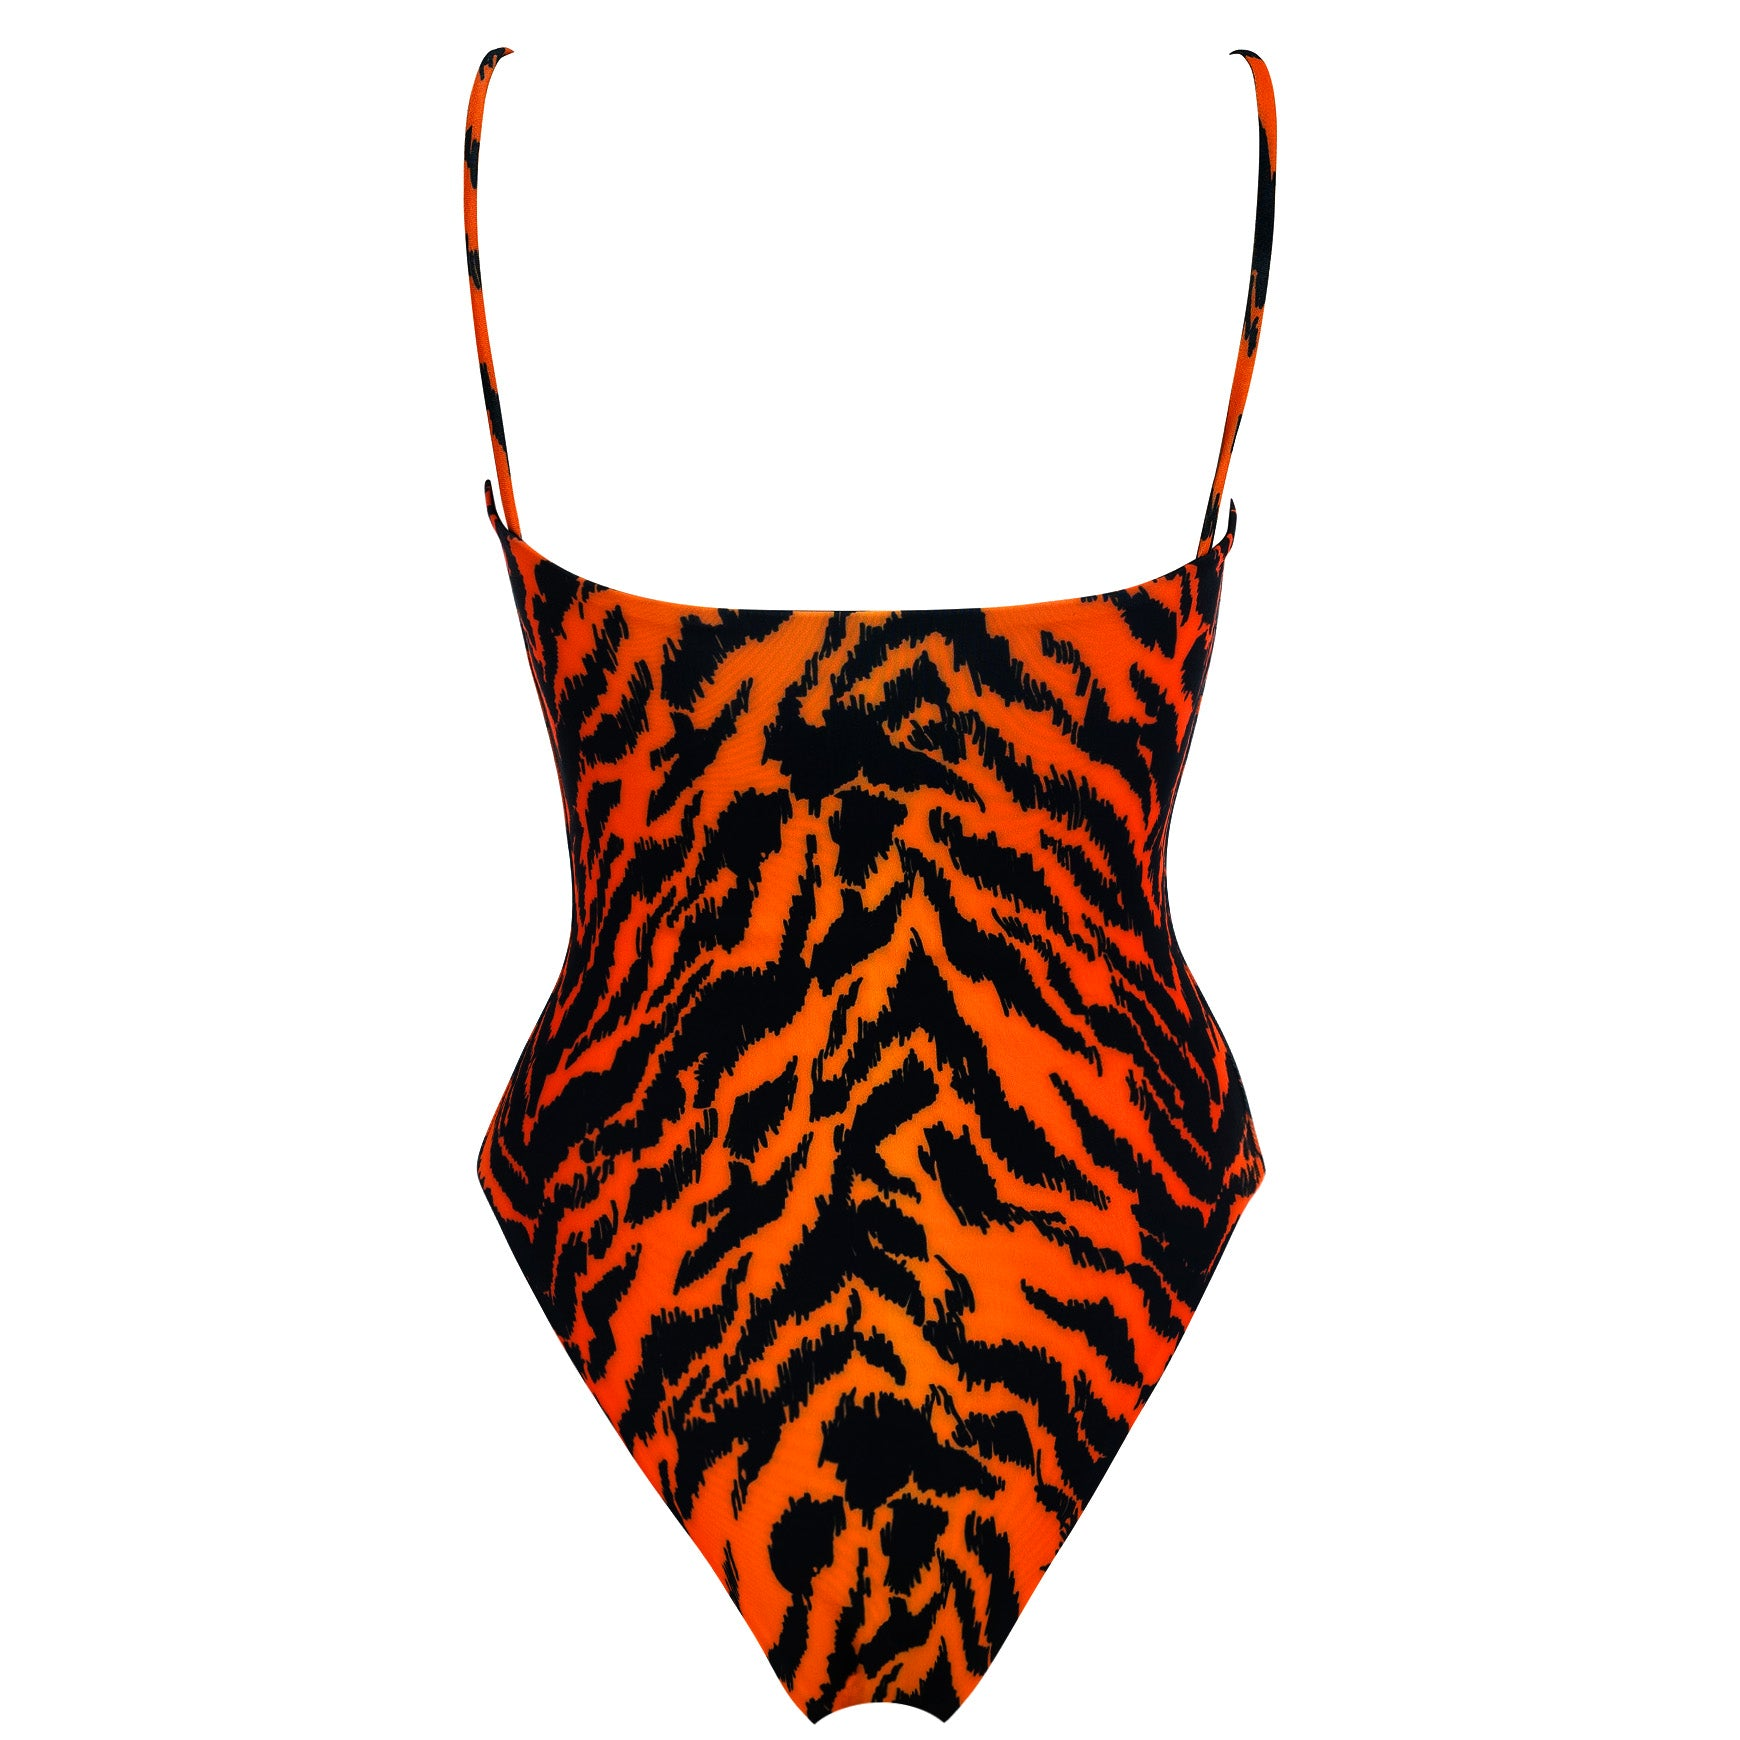 Lola One Piece - Tiger